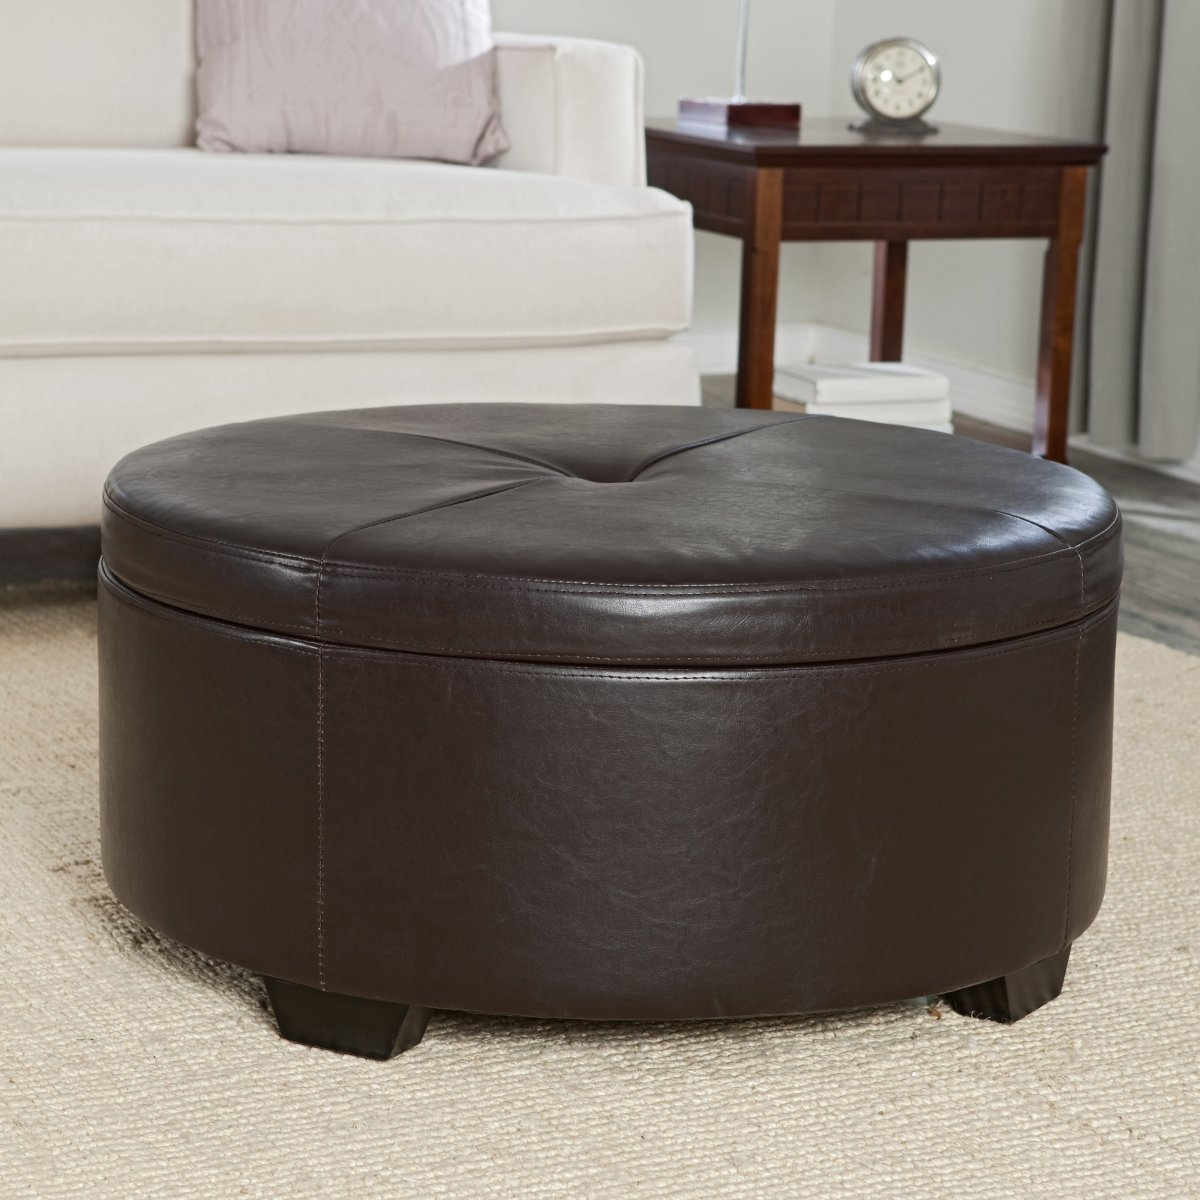 round-outdoor-storage-ottoman-round-leather-storage-ottoman-coffee-table-round-coffee-table-with-ottoman (Image 9 of 10)